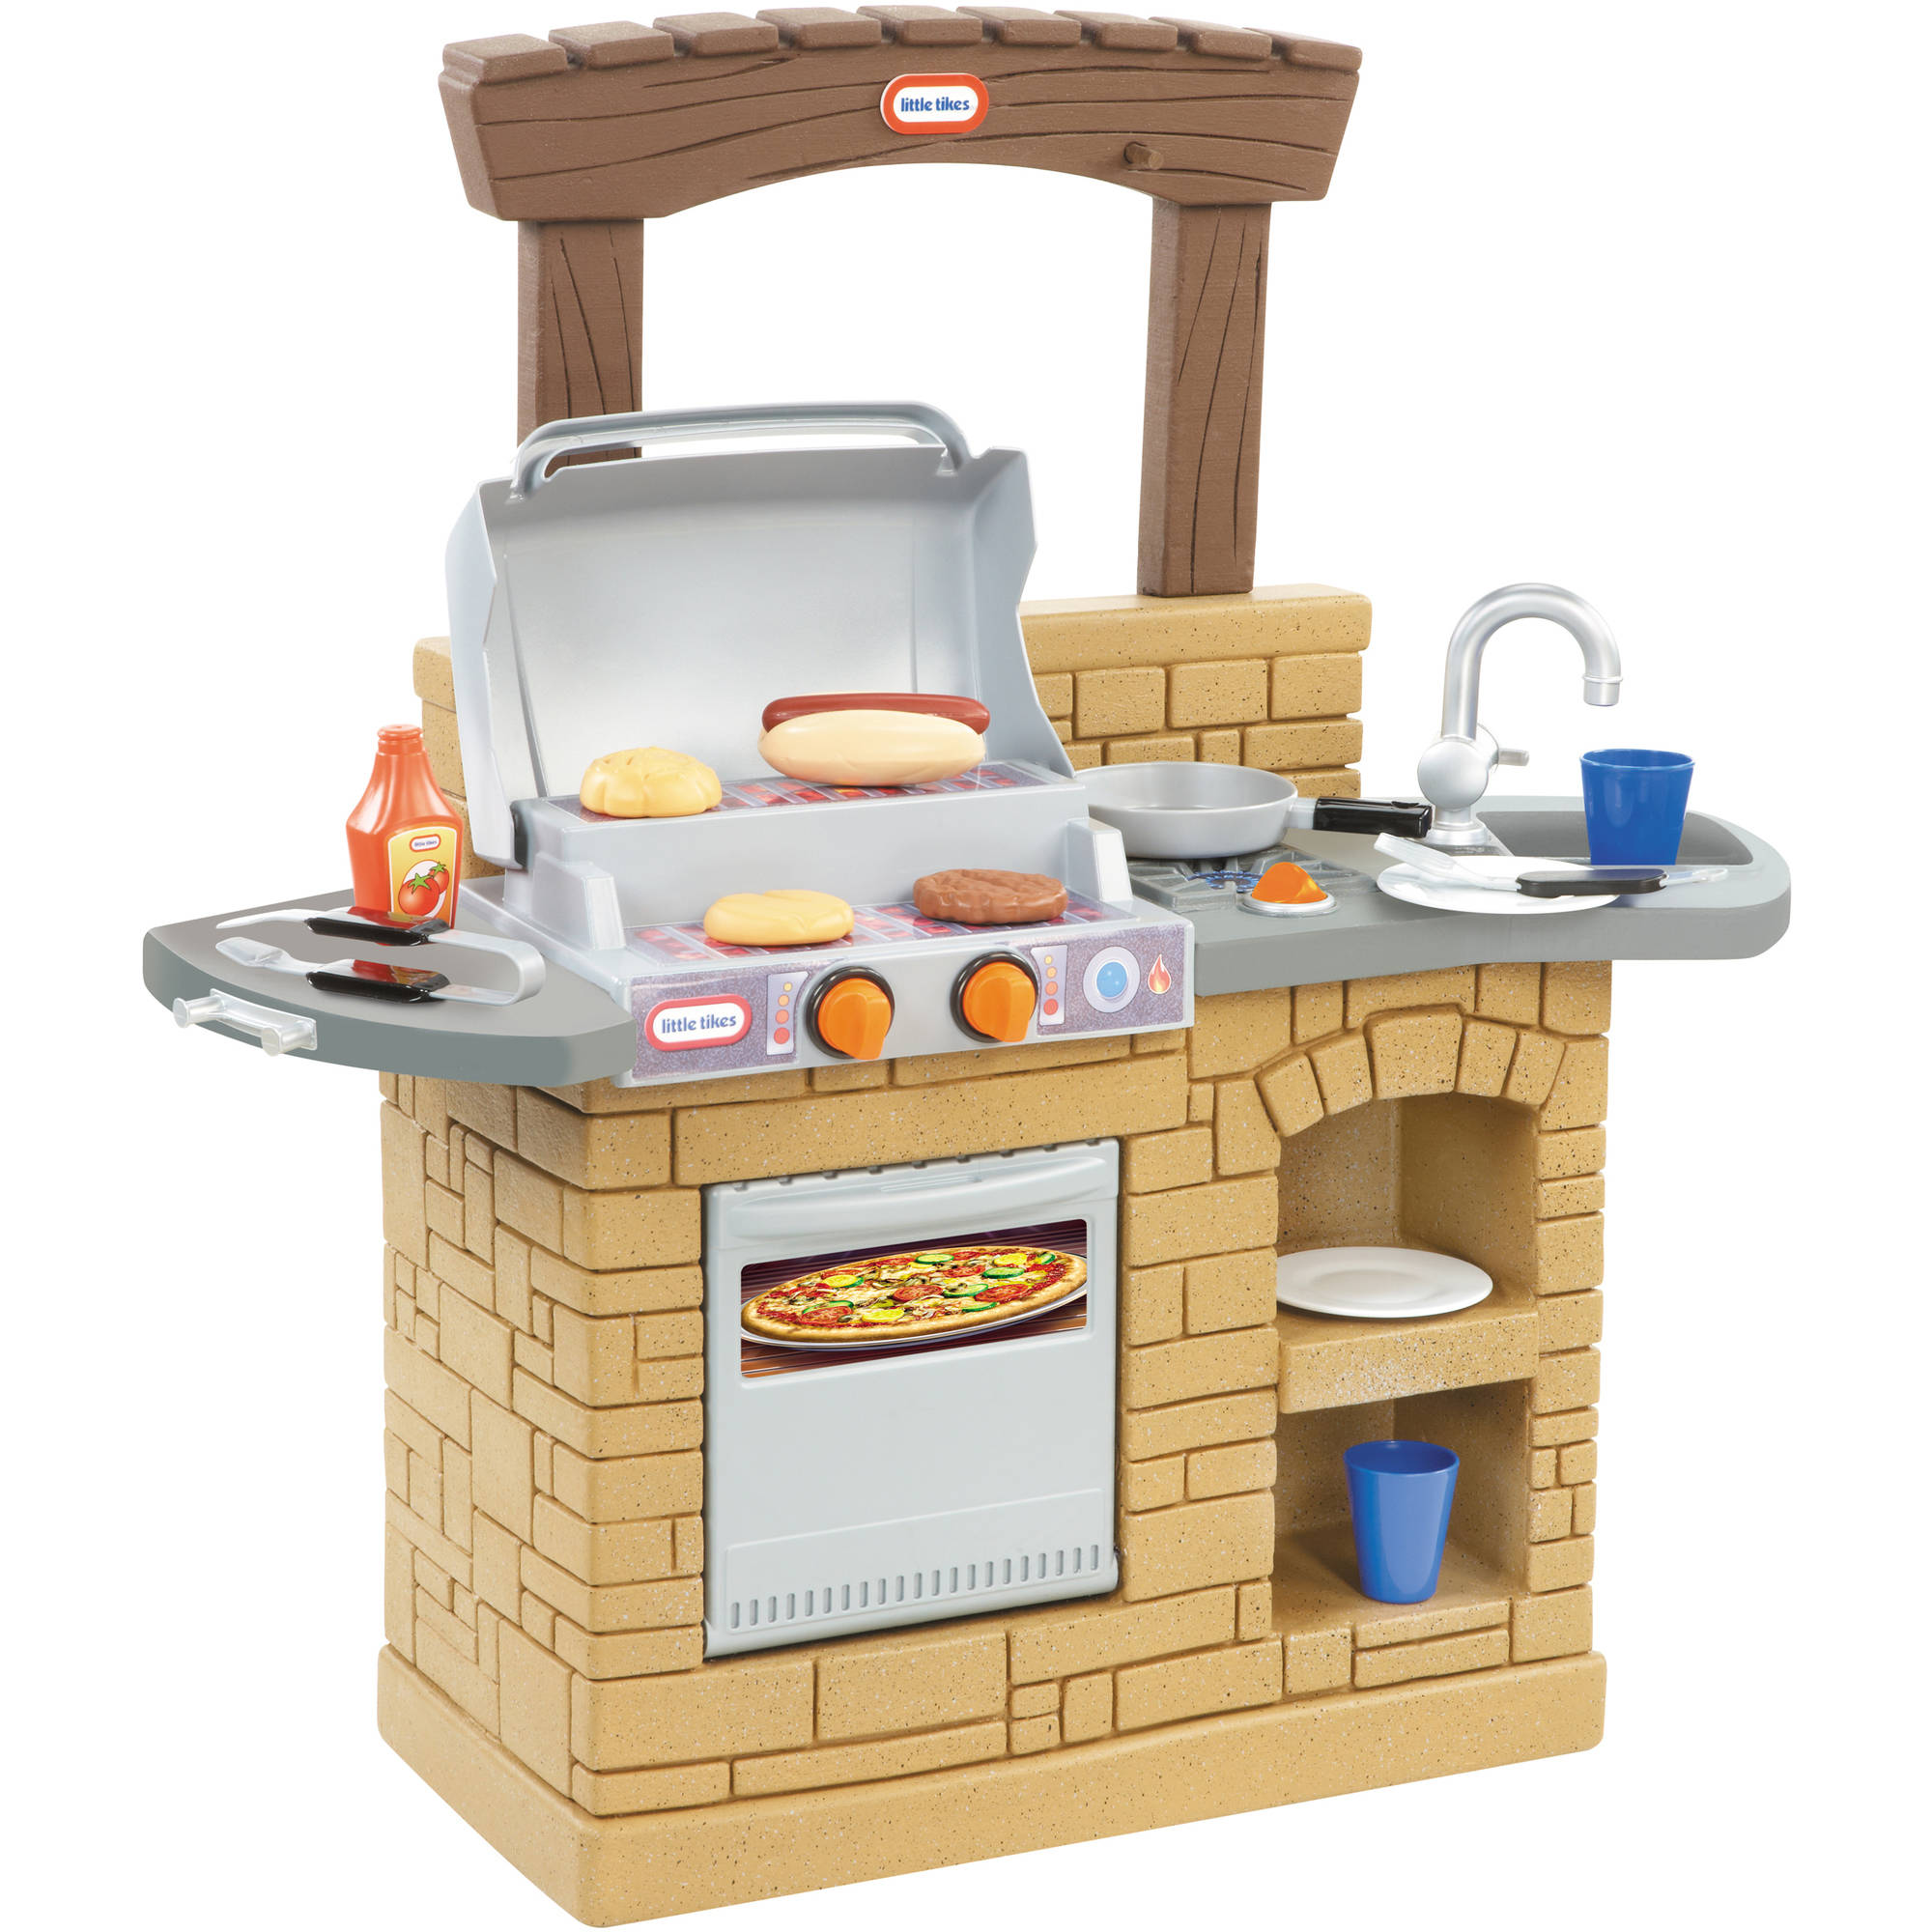 Play Kitchen From Old Furniture Little Tikes Cook N Play Outdoor Bbq Grill Walmartcom